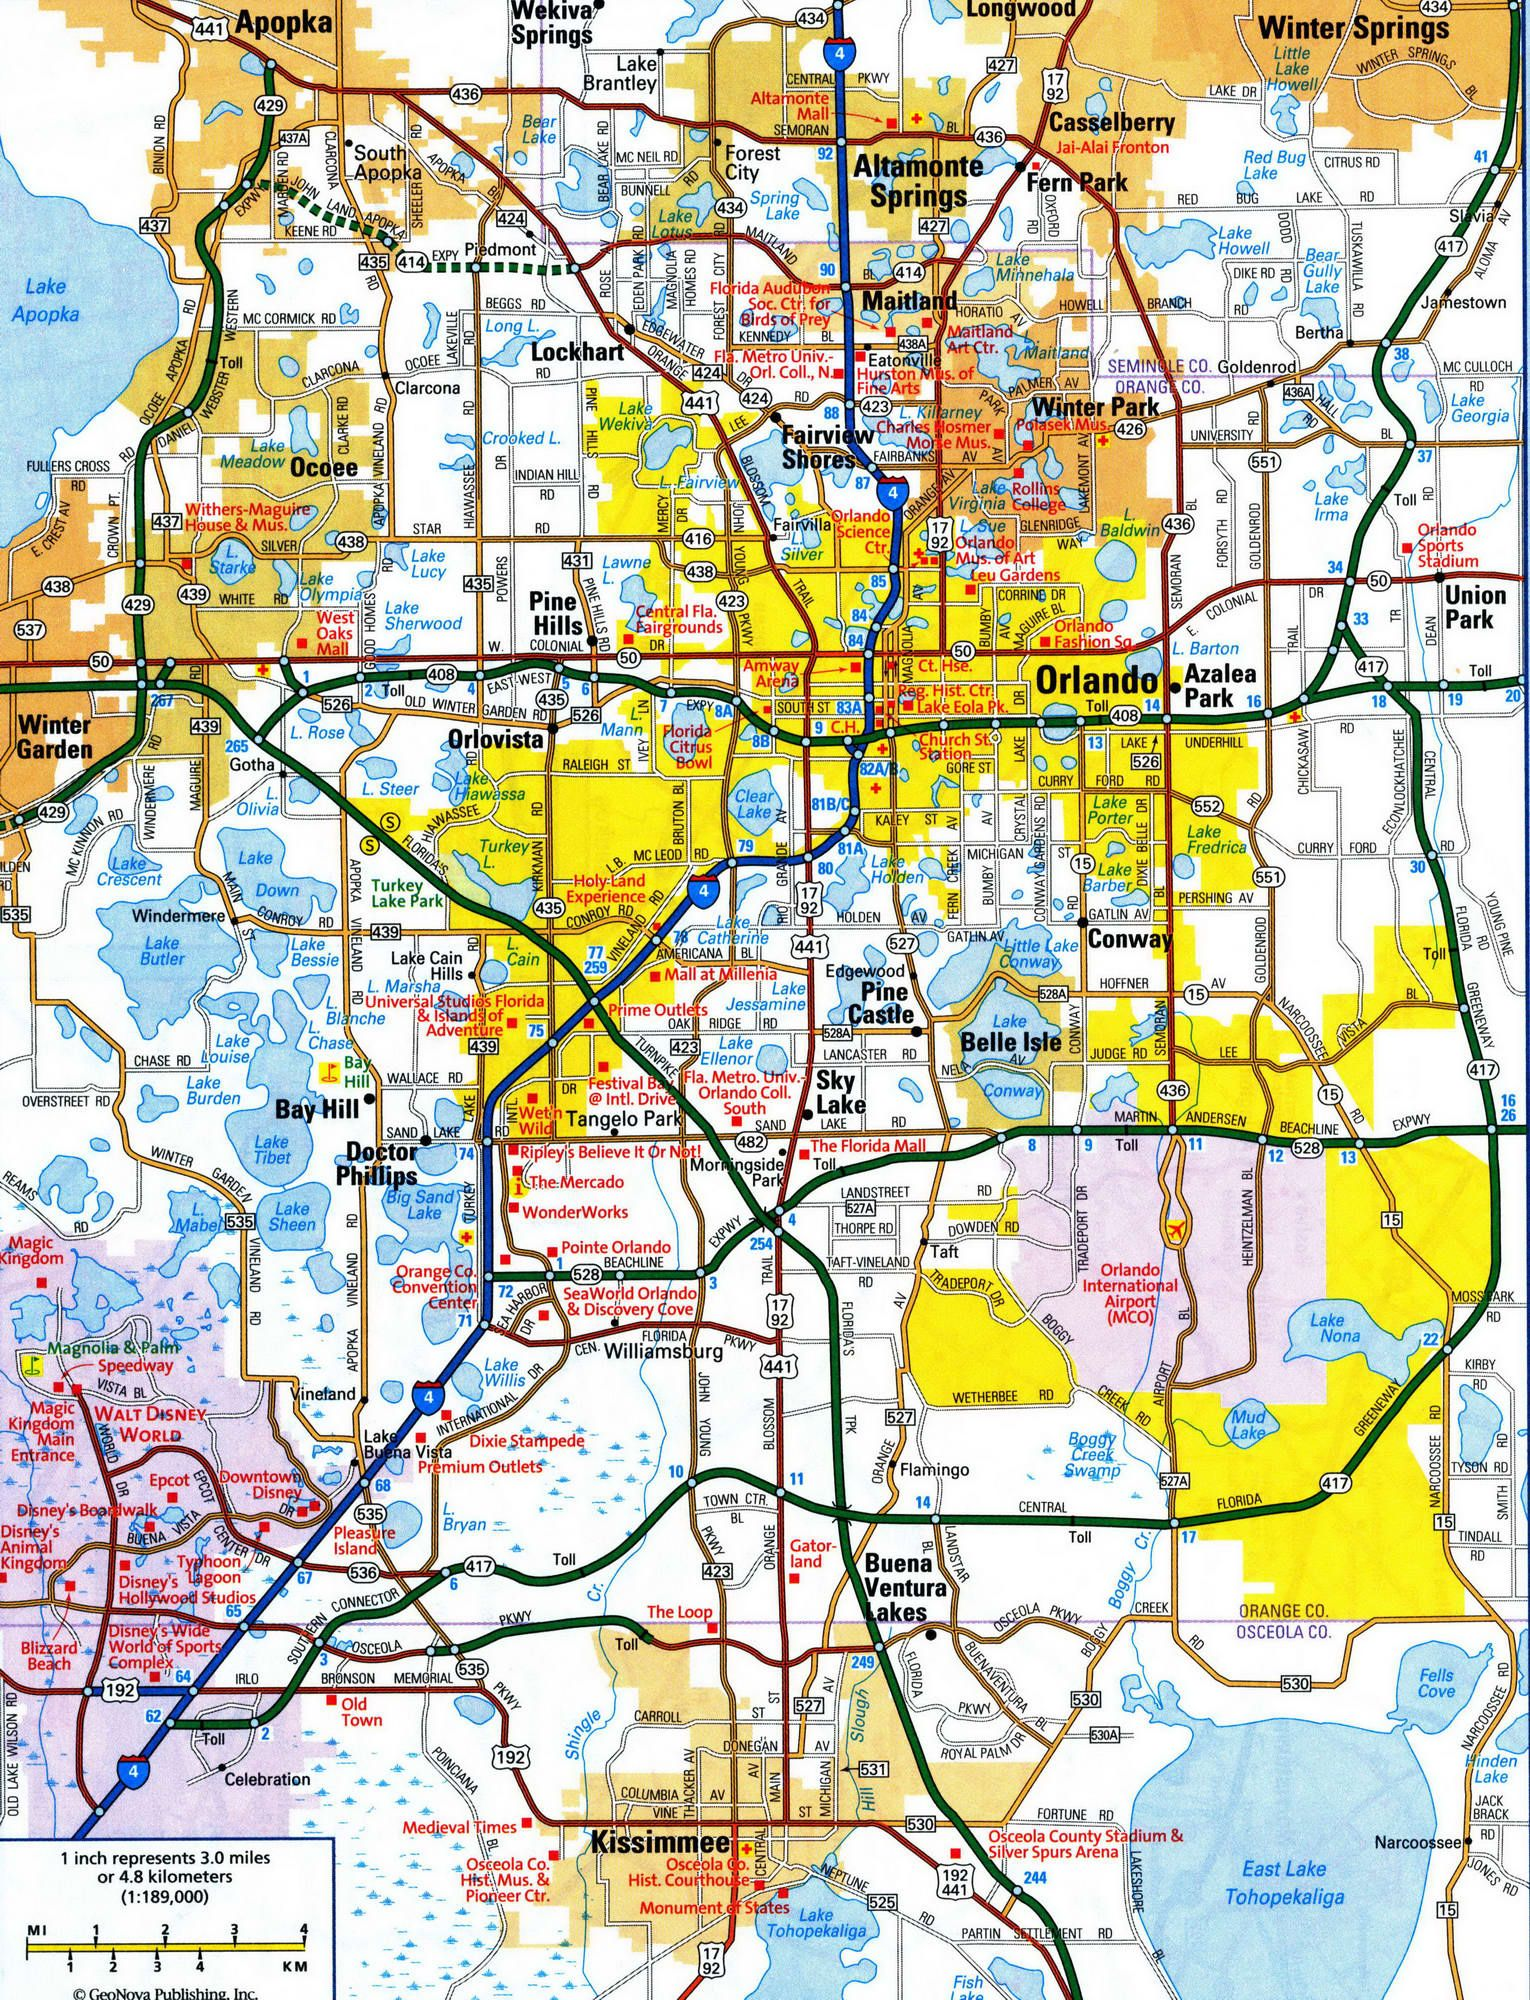 Florida Map Orlando.Image Result For Orlando Highway Map Tattoos Map Highway Map